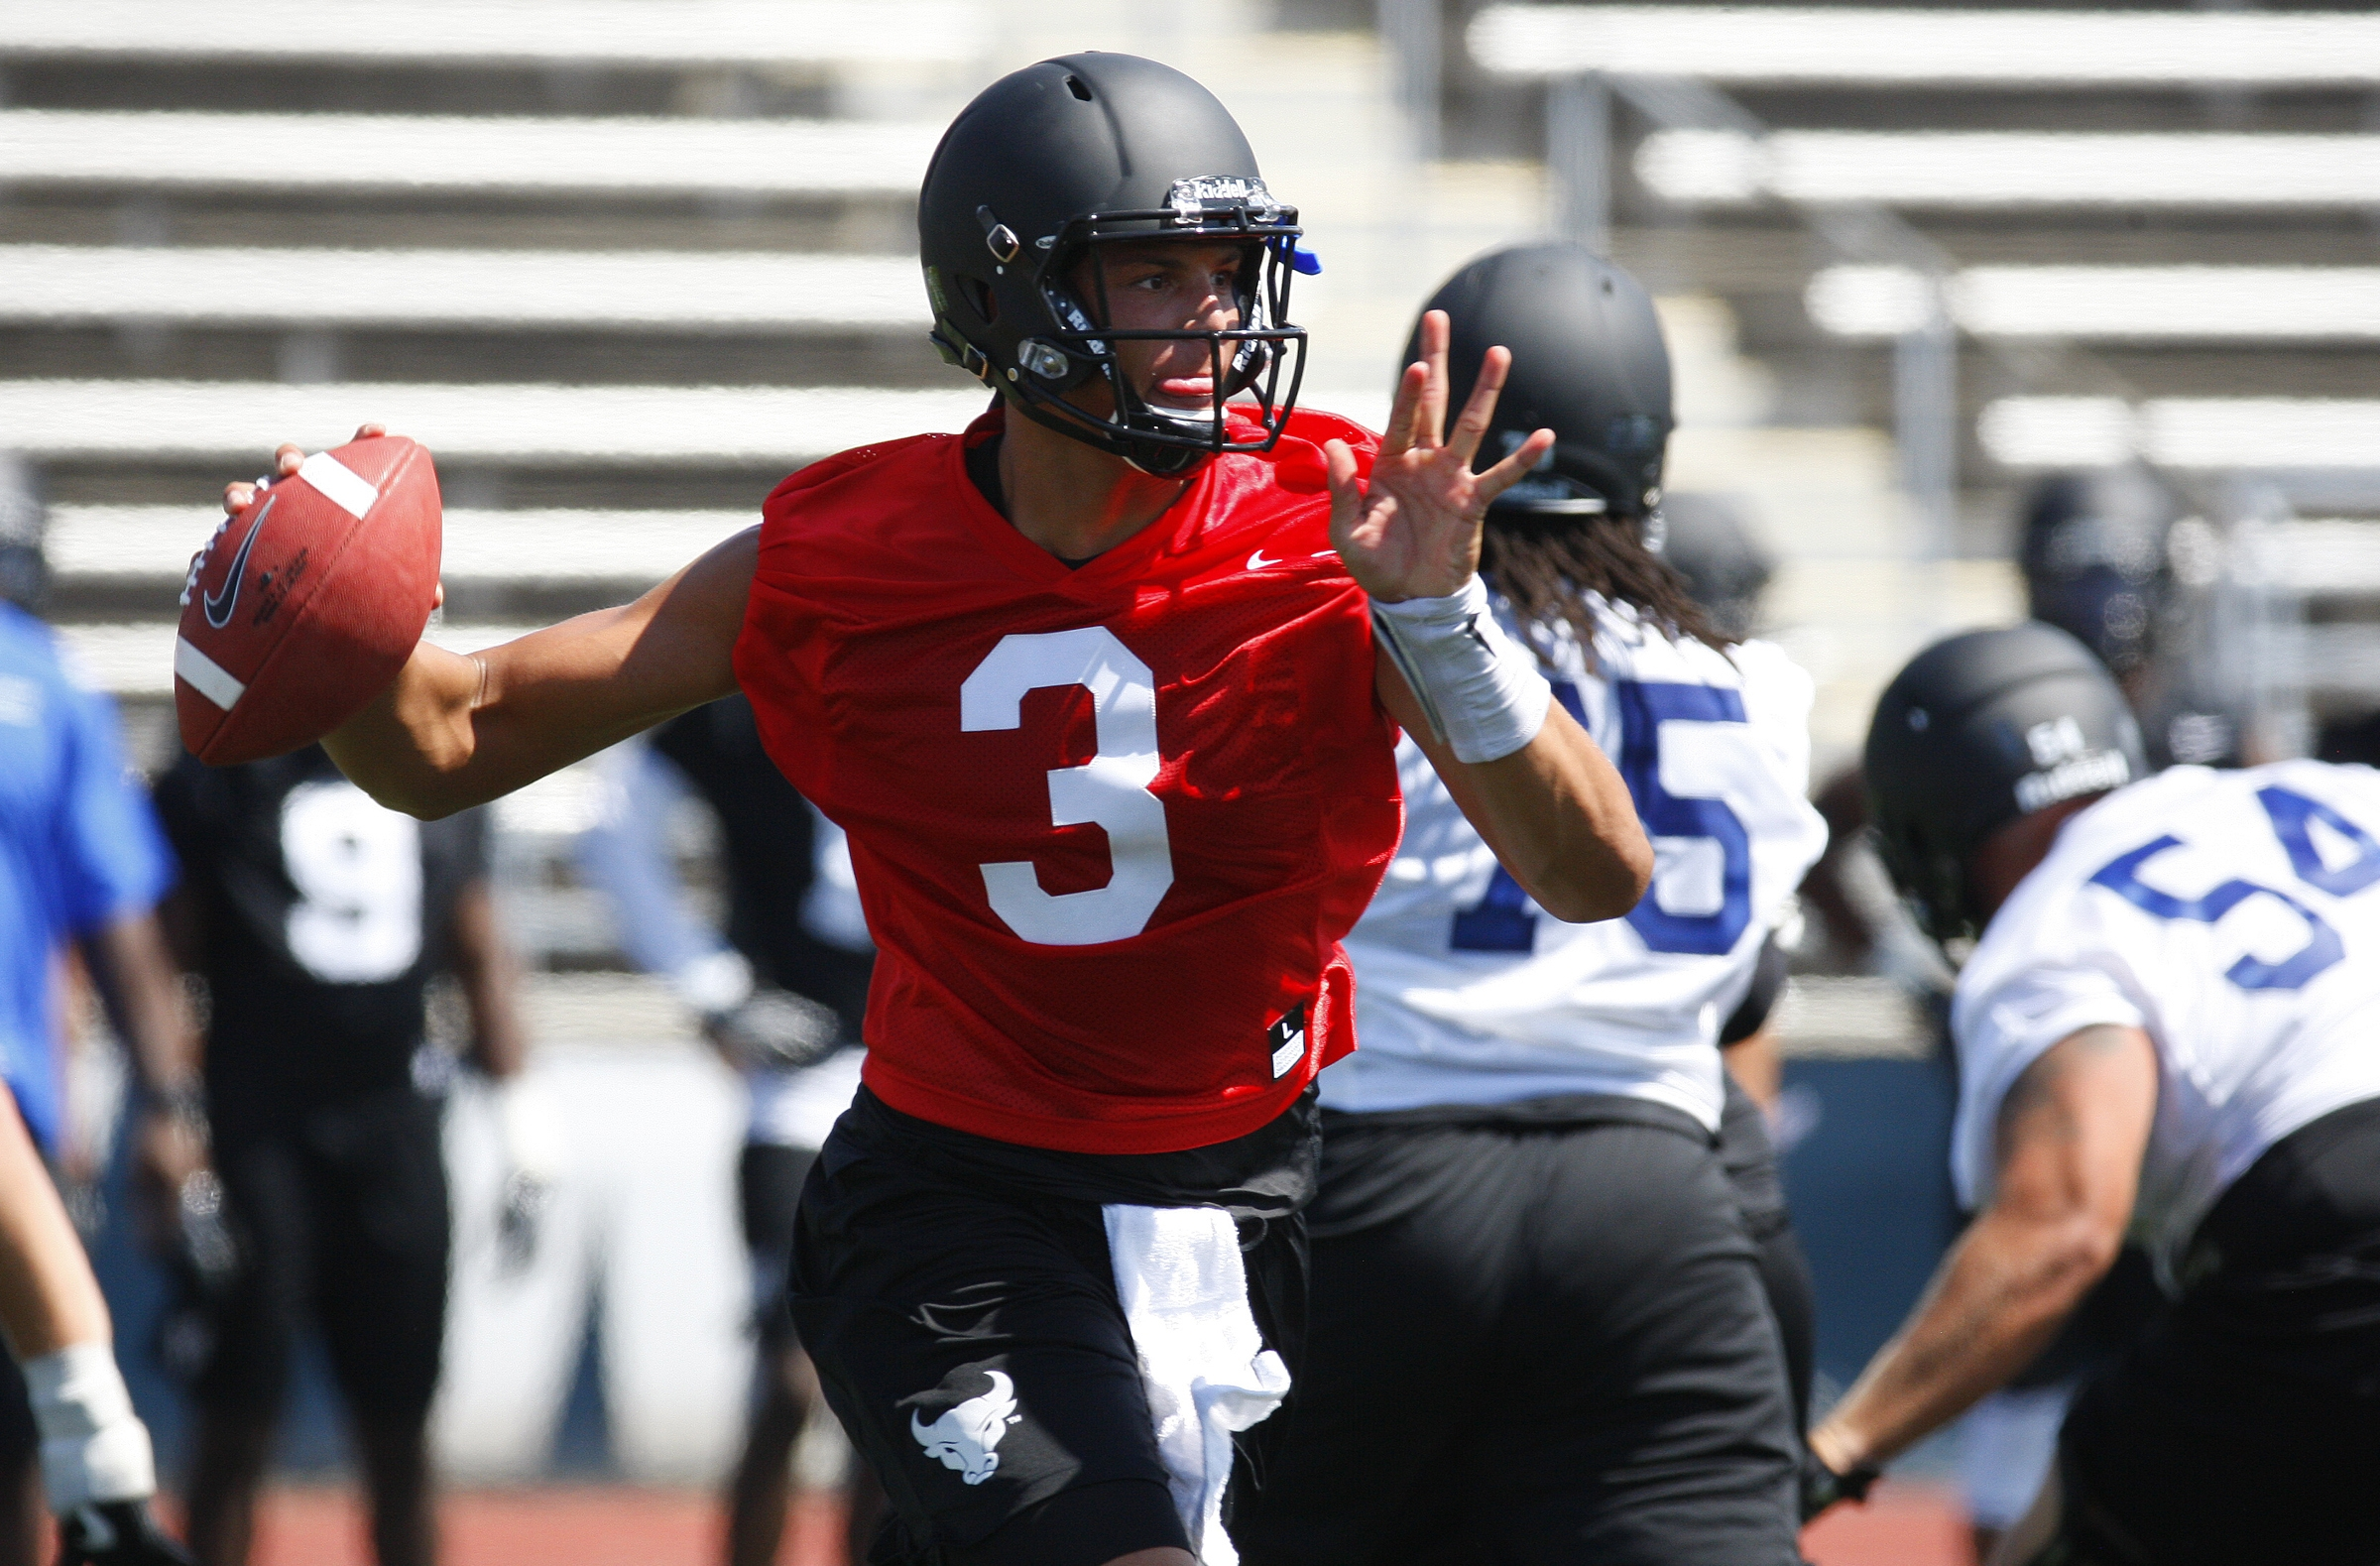 University at Buffalo quarterback Tyree Jackson has grown another inch since spring practice and now stands 6-foot-7.